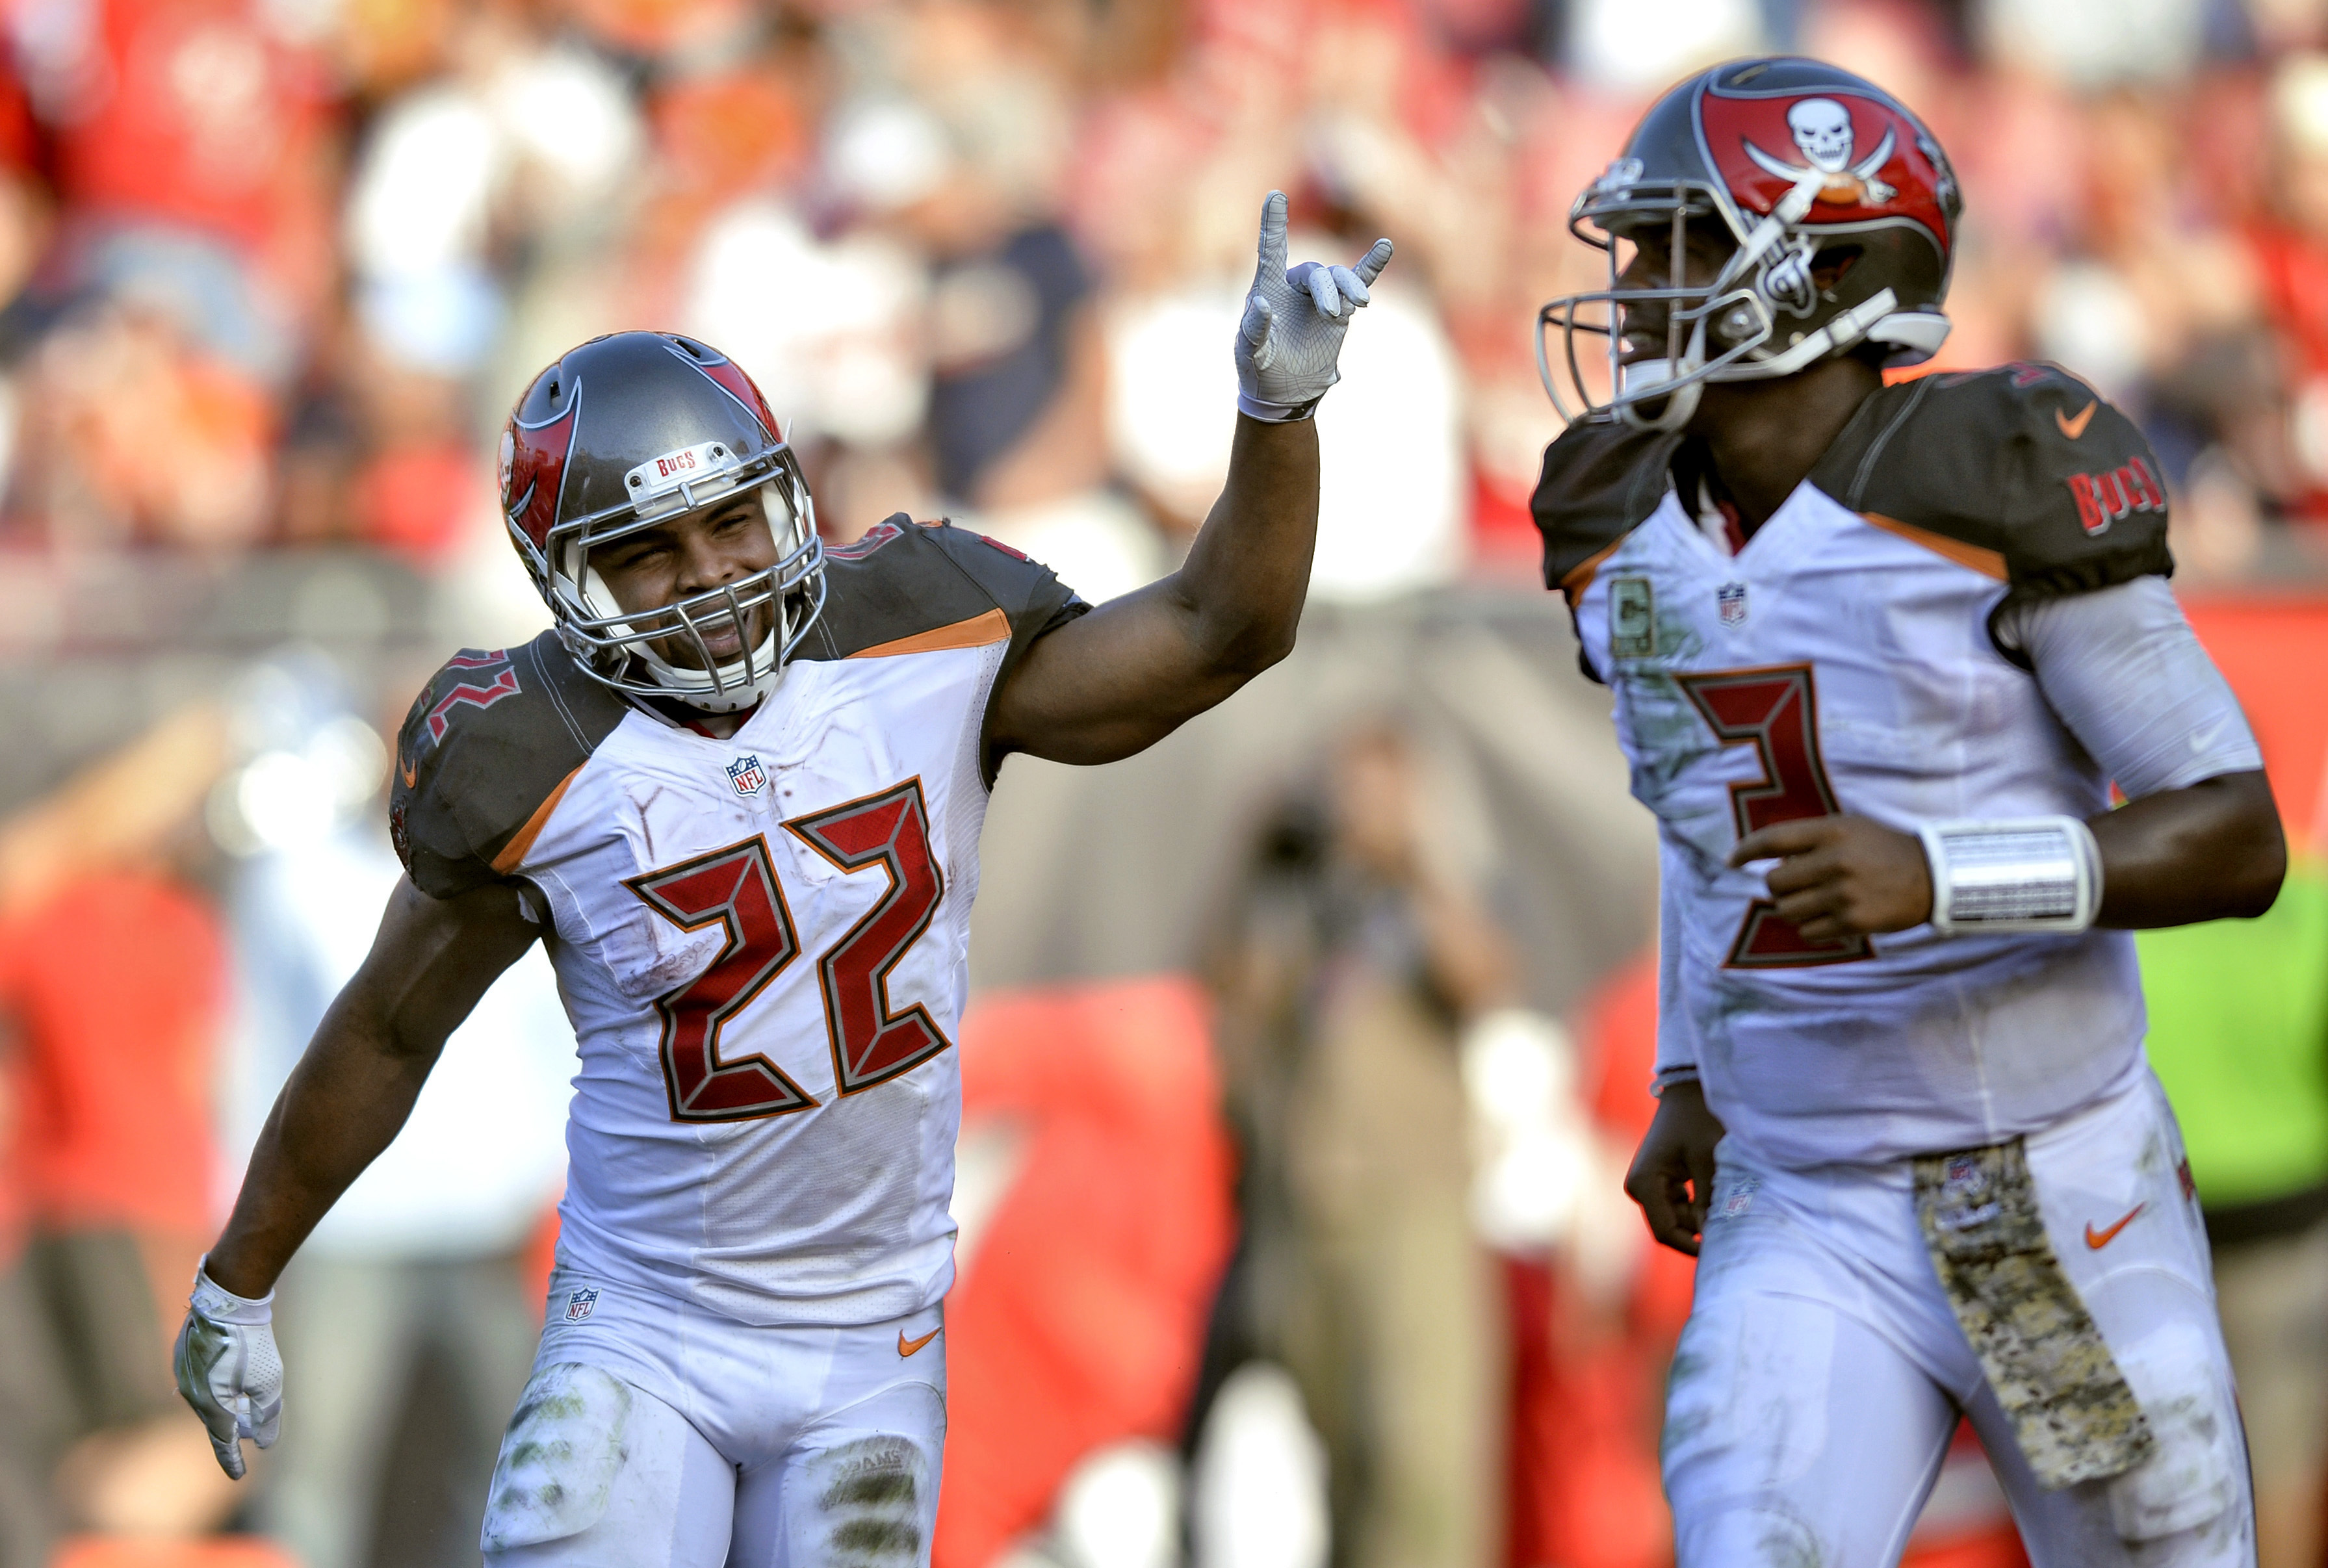 Tampa Bay Buccaneers running back Doug Martin (22) celebrates with quarterback Jameis Winston (3) after Martin's 1-yard touchdown run against the Chicago Bears during the fourth quarter of an NFL football game Sunday, Nov. 13, 2016, in Tampa, Fla. (AP Pho